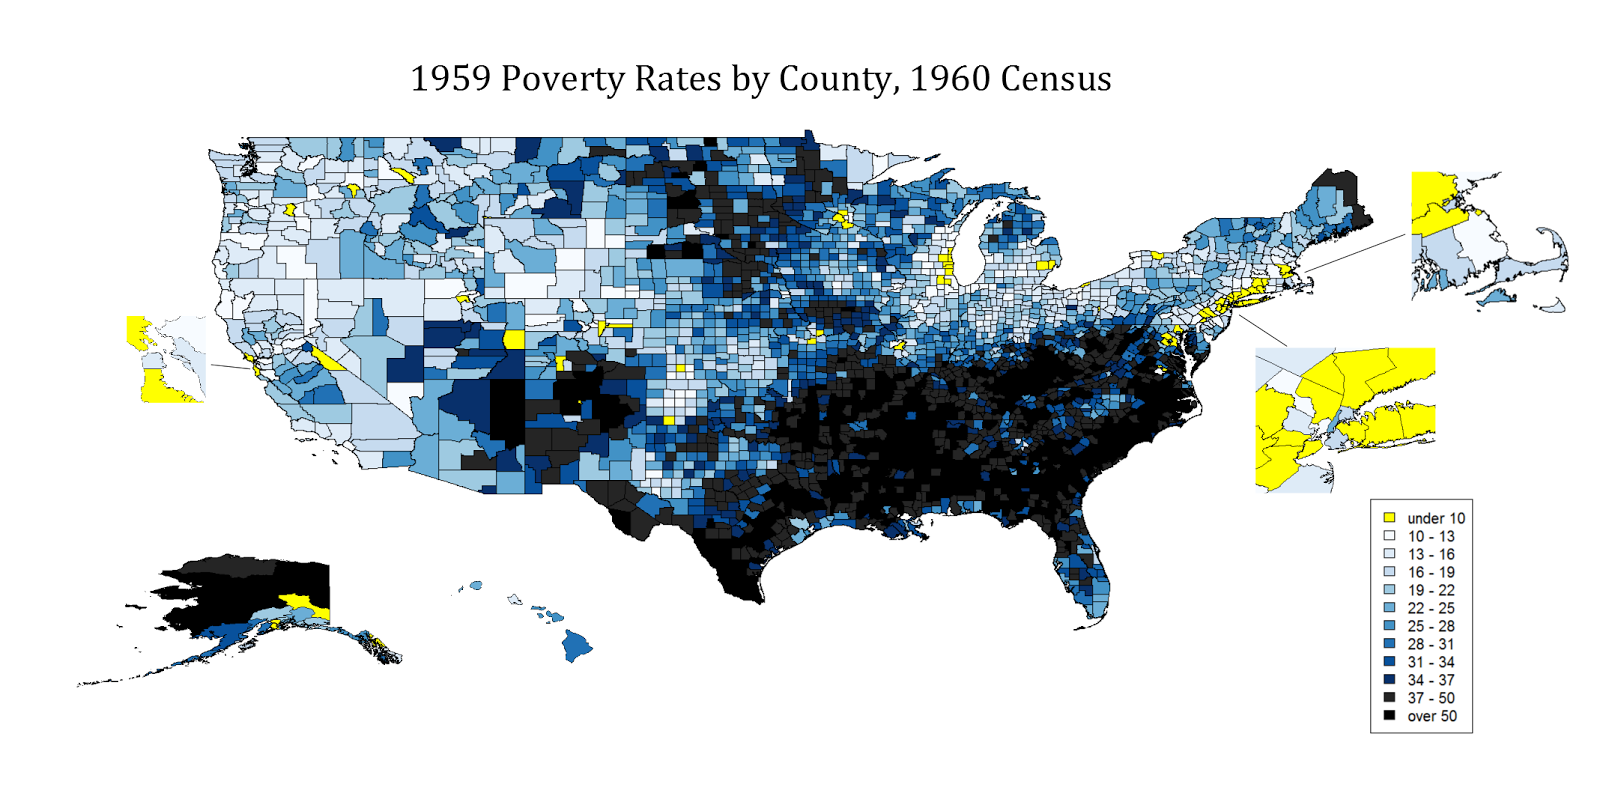 County Level Poverty Rates In The 1959 United States